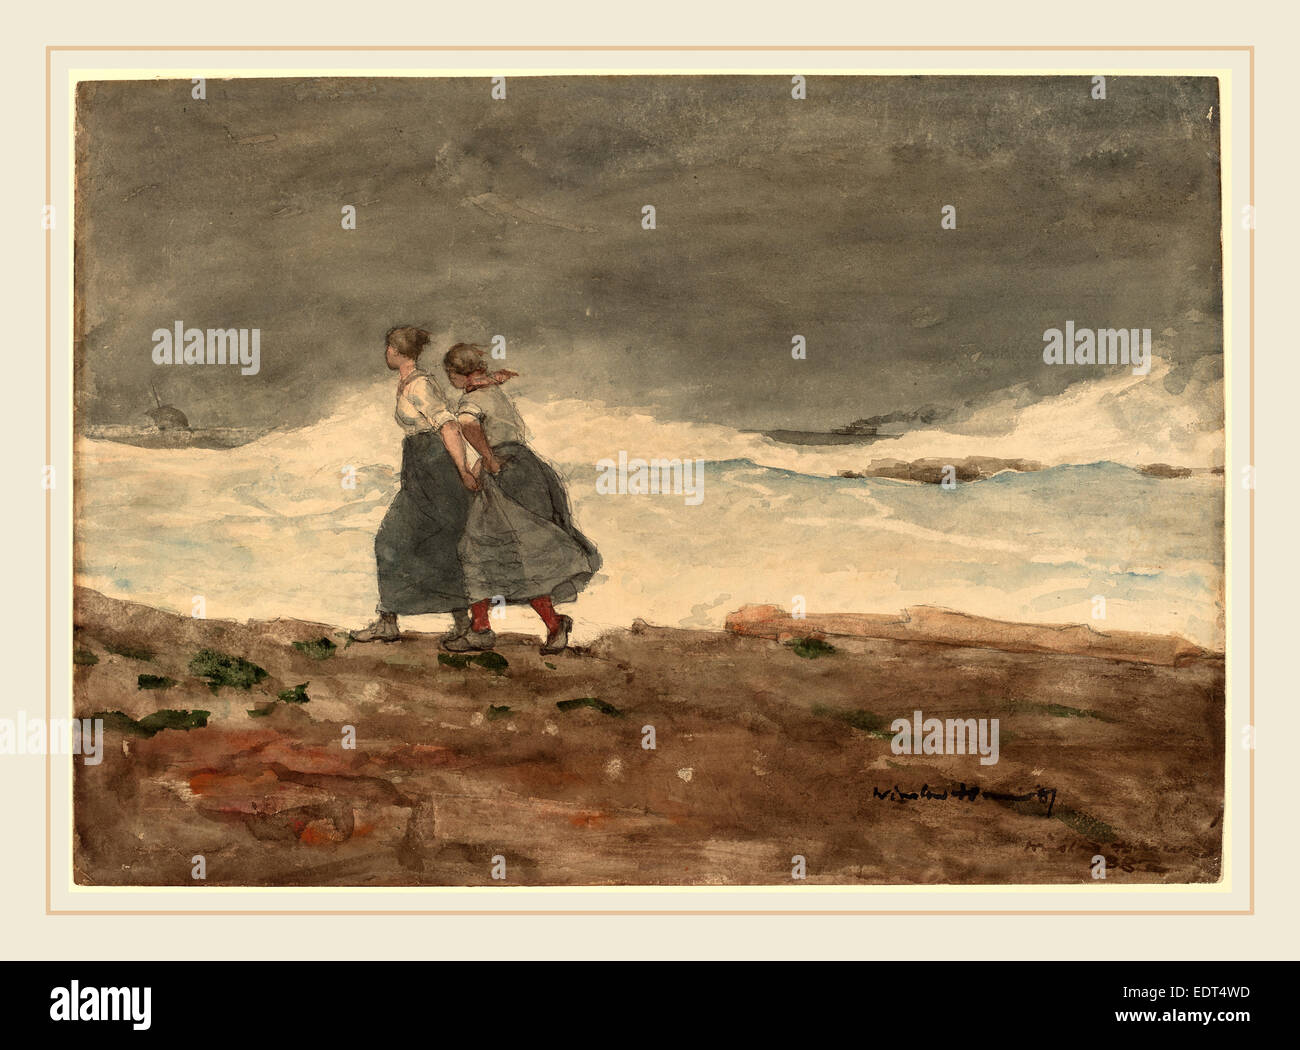 Winslow Homer, Danger, American, 1836-1910, 1883 and 1887, watercolor and gouache over graphite - Stock Image